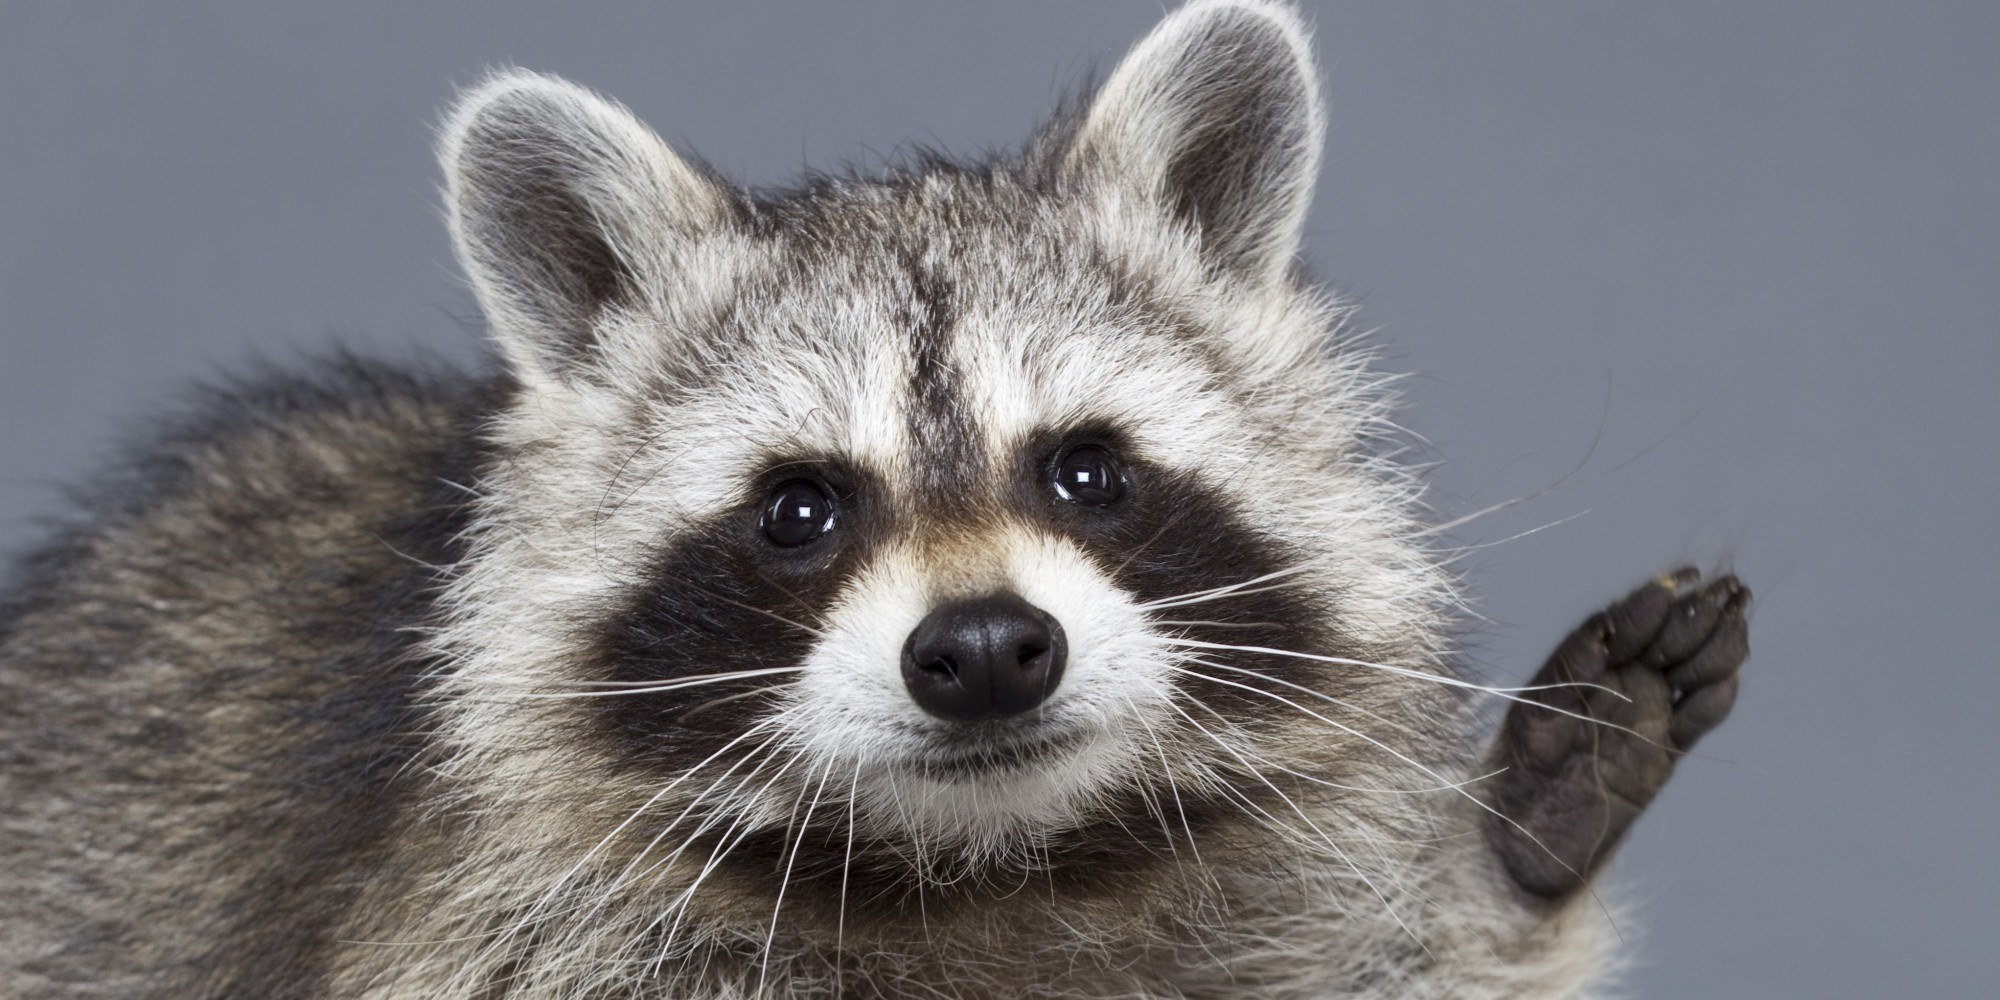 12 fast ways to get rid of raccoons in attic yard pestwiki